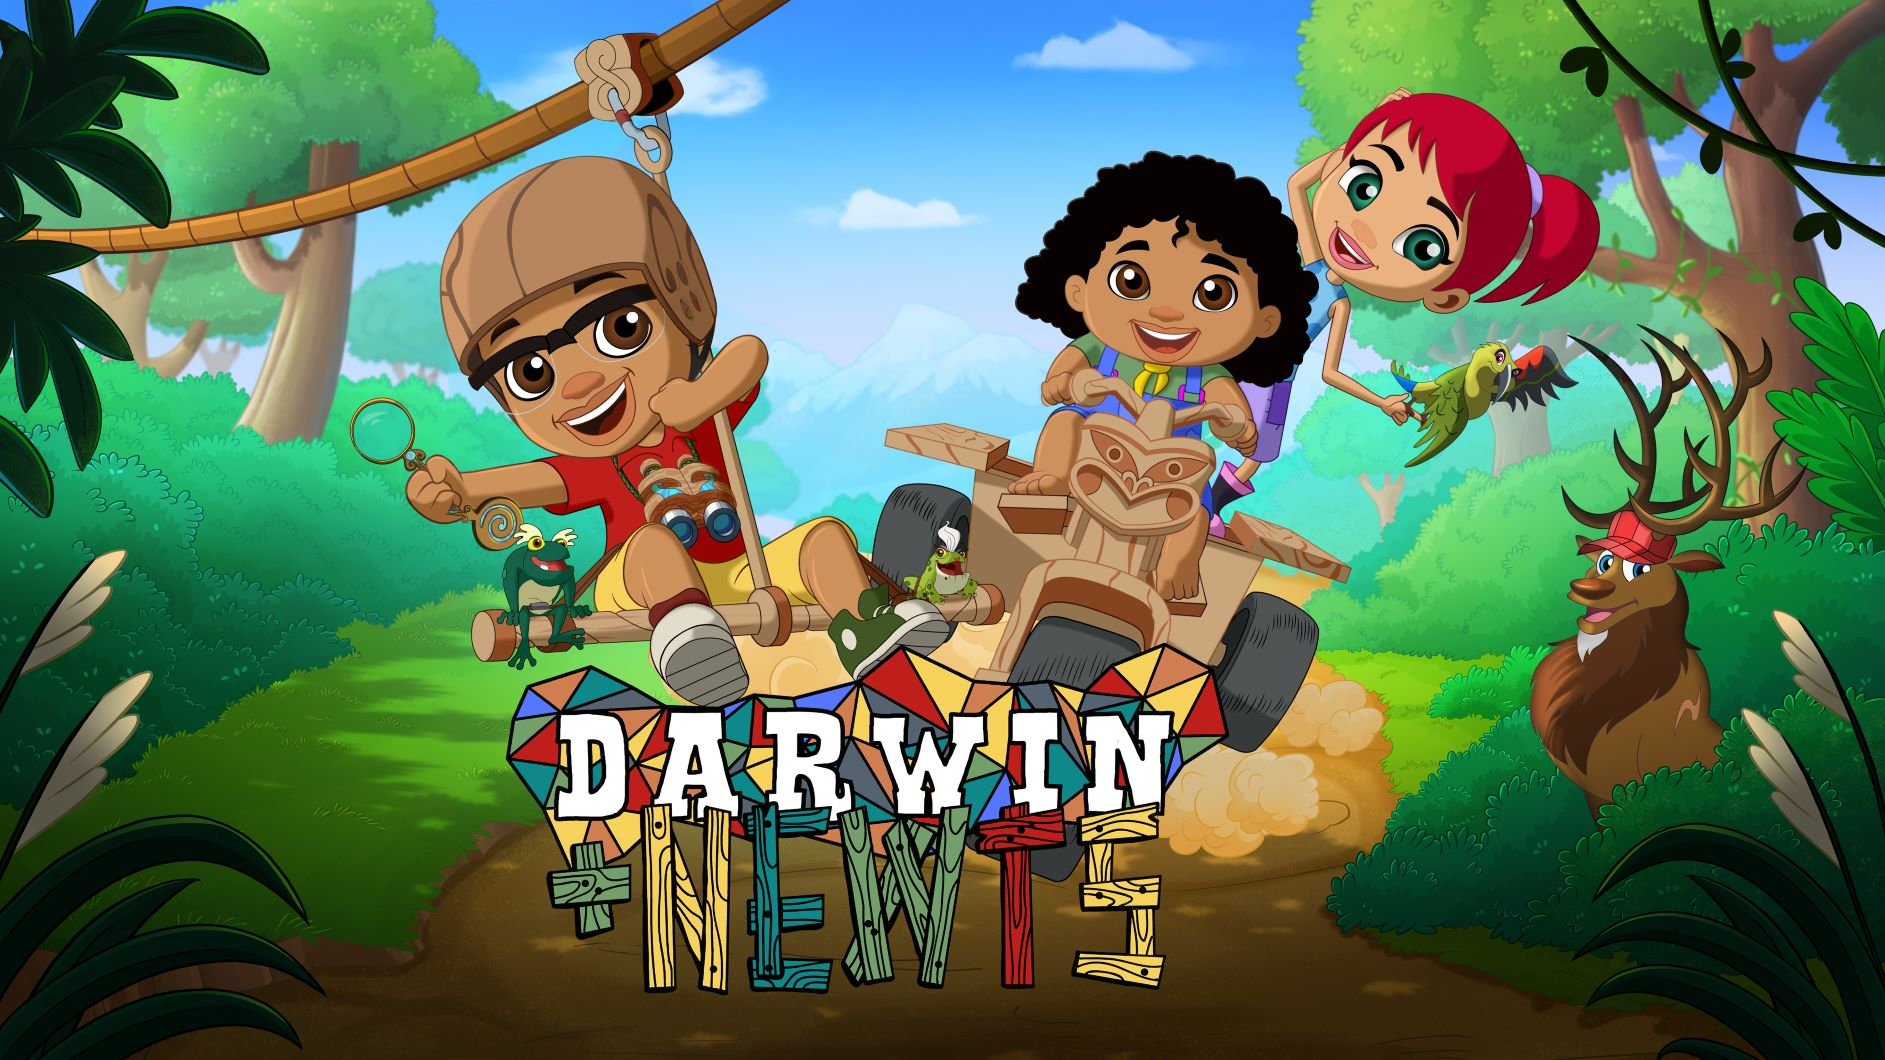 Imira's new edutainment title 'Darwin & Newts' adds the STEM spark to Da Vinci Kids library